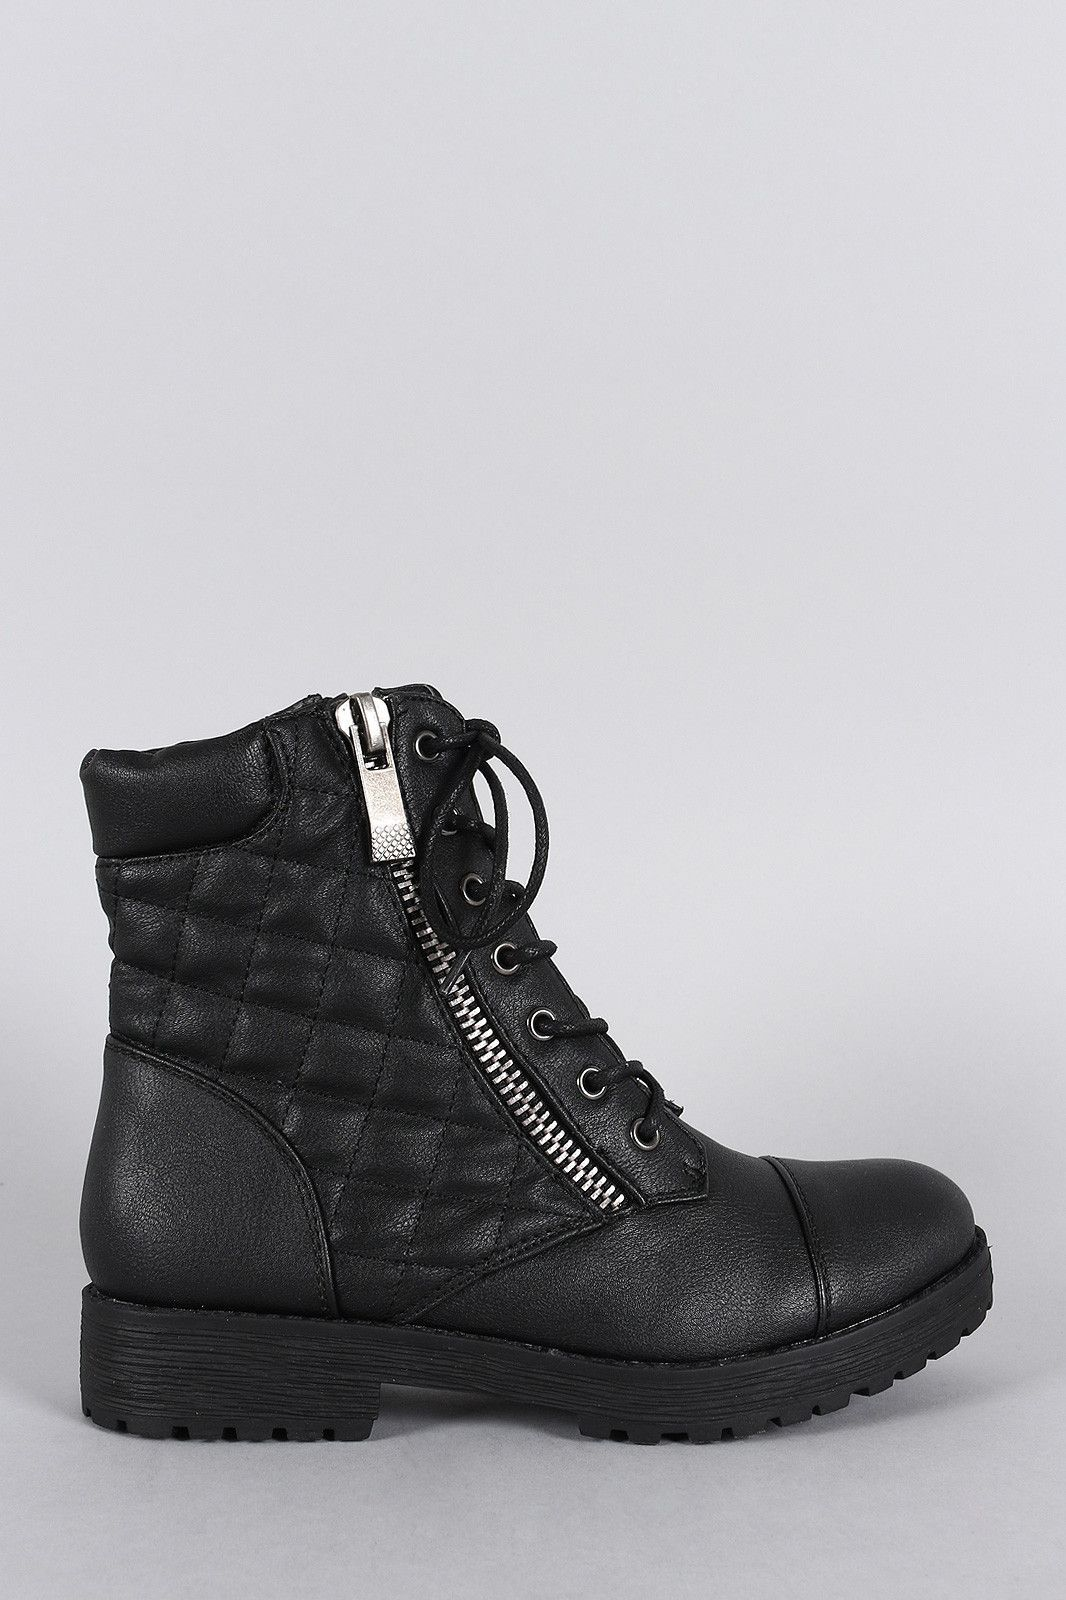 76e87a09c7d2 Bamboo Quilted Lace Up Combat Ankle Boots